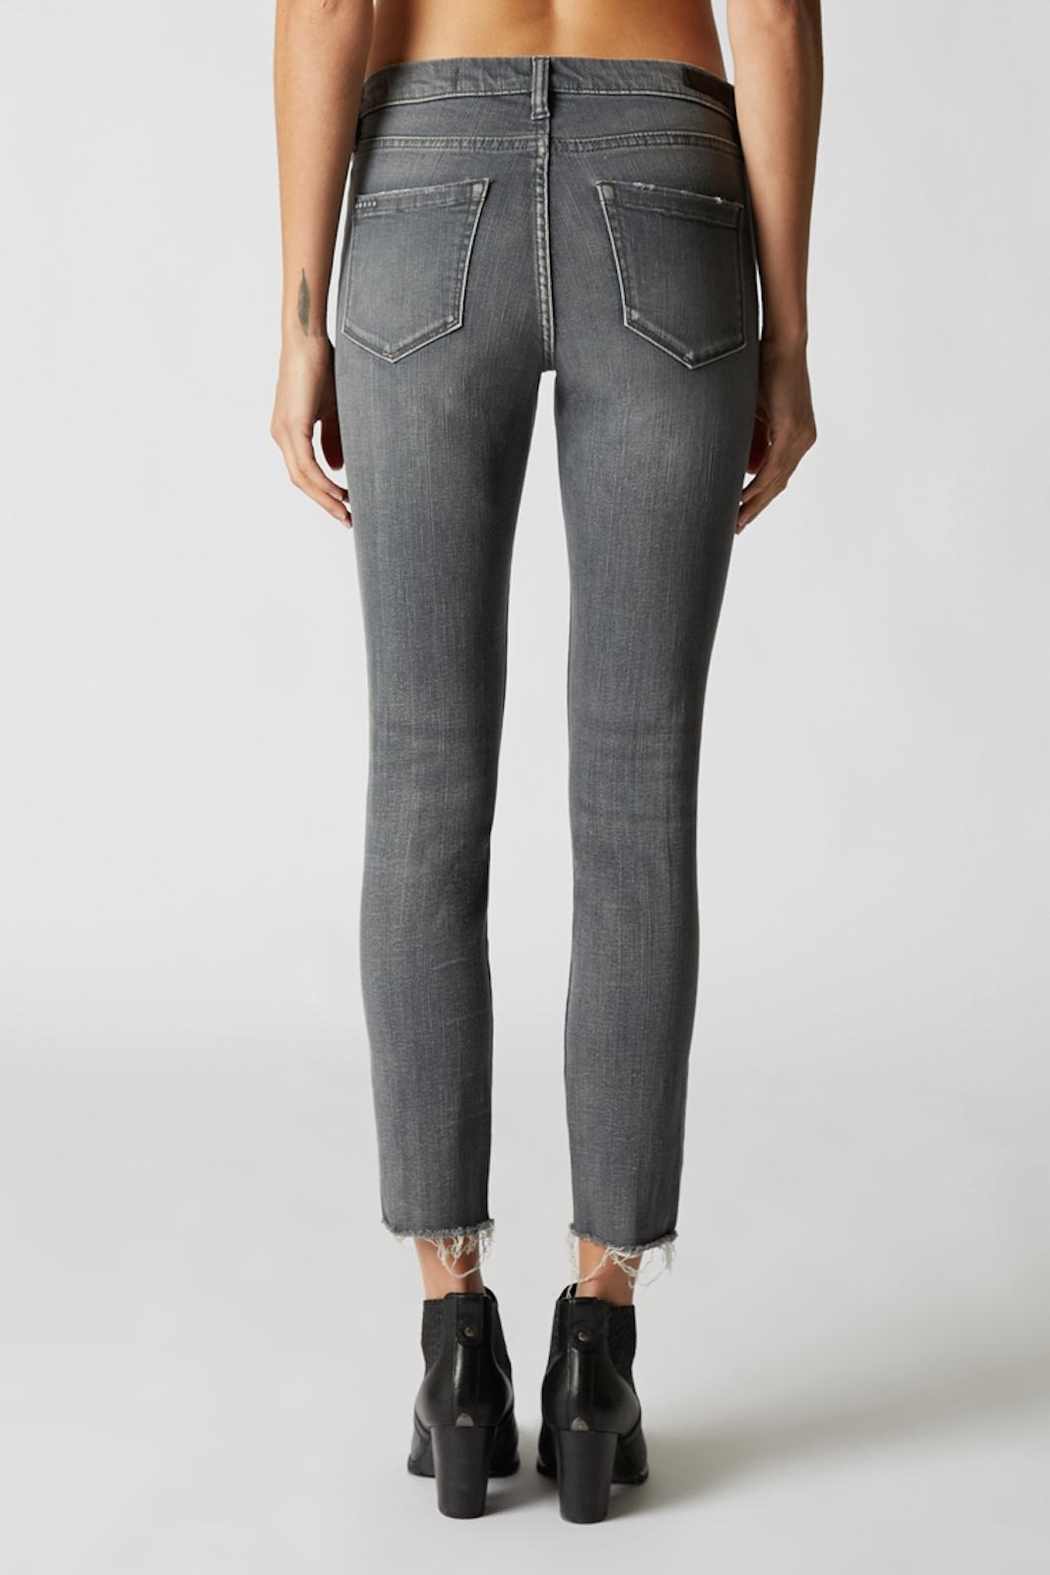 BlankNYC Tequila Royale Jeans - Side Cropped Image